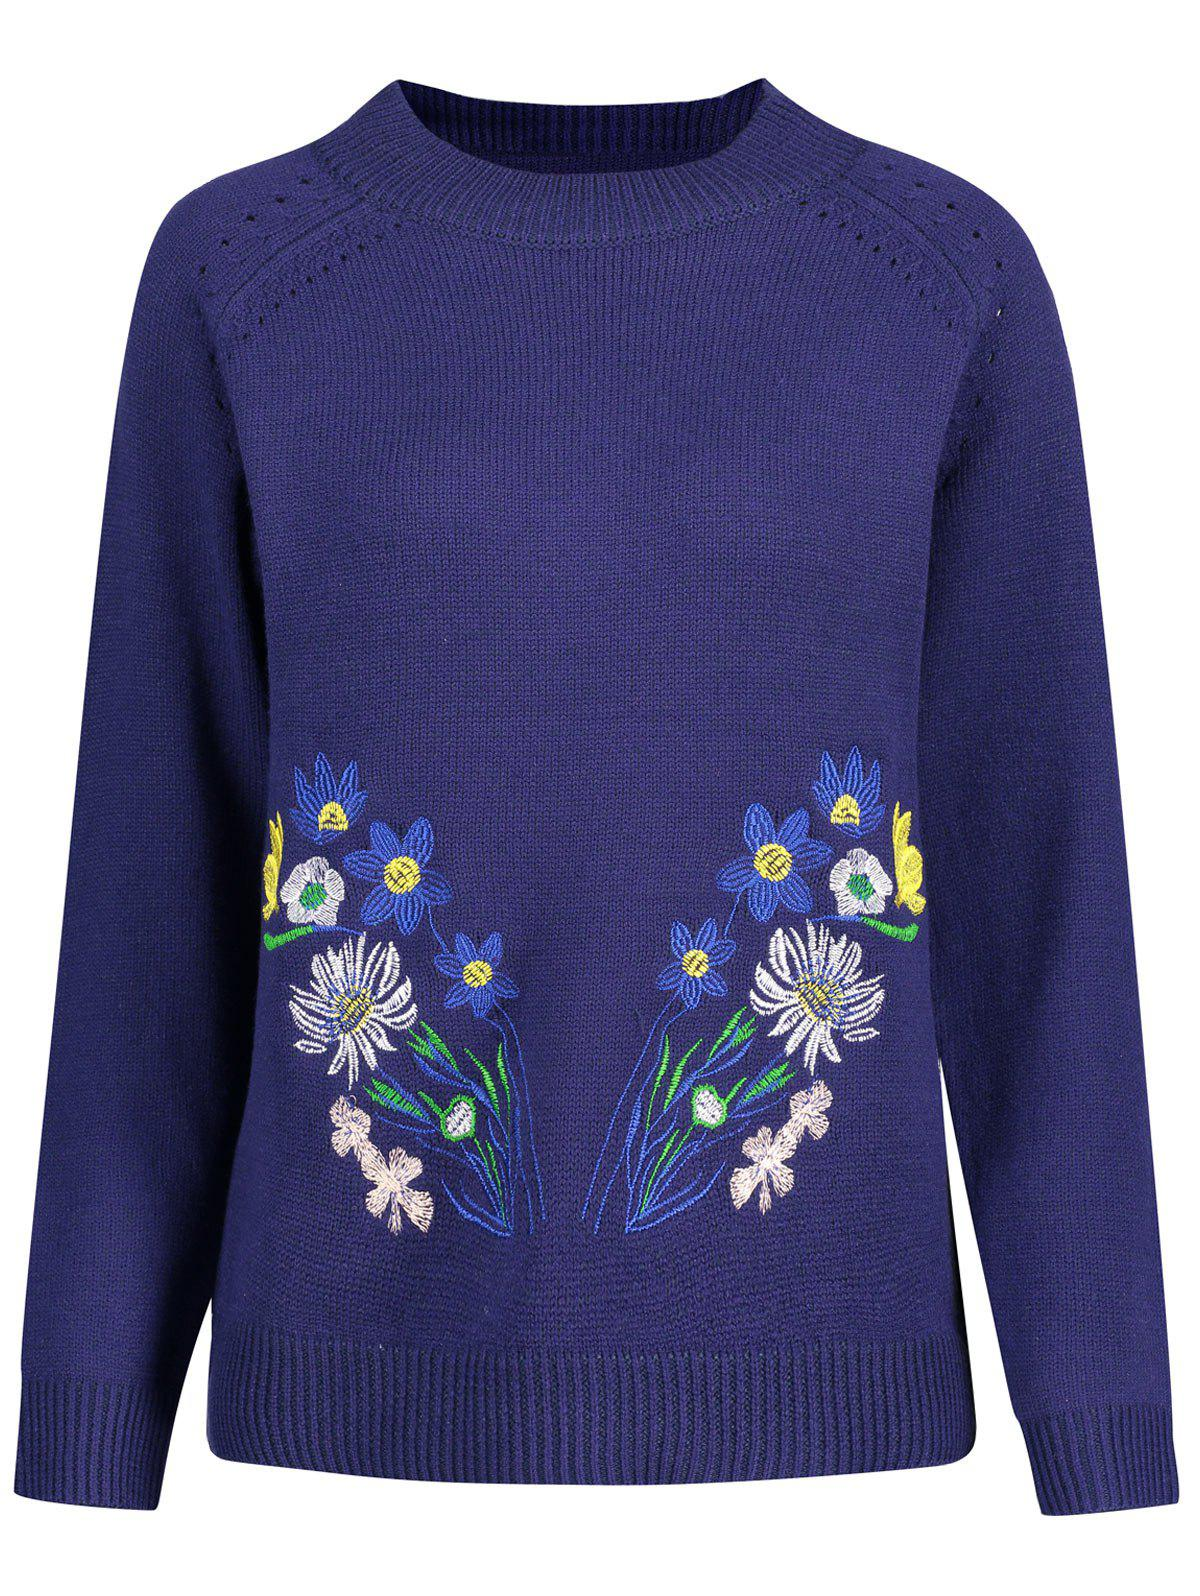 Trendy Openwork Plus Size High Neck Floral Embroidered Sweater